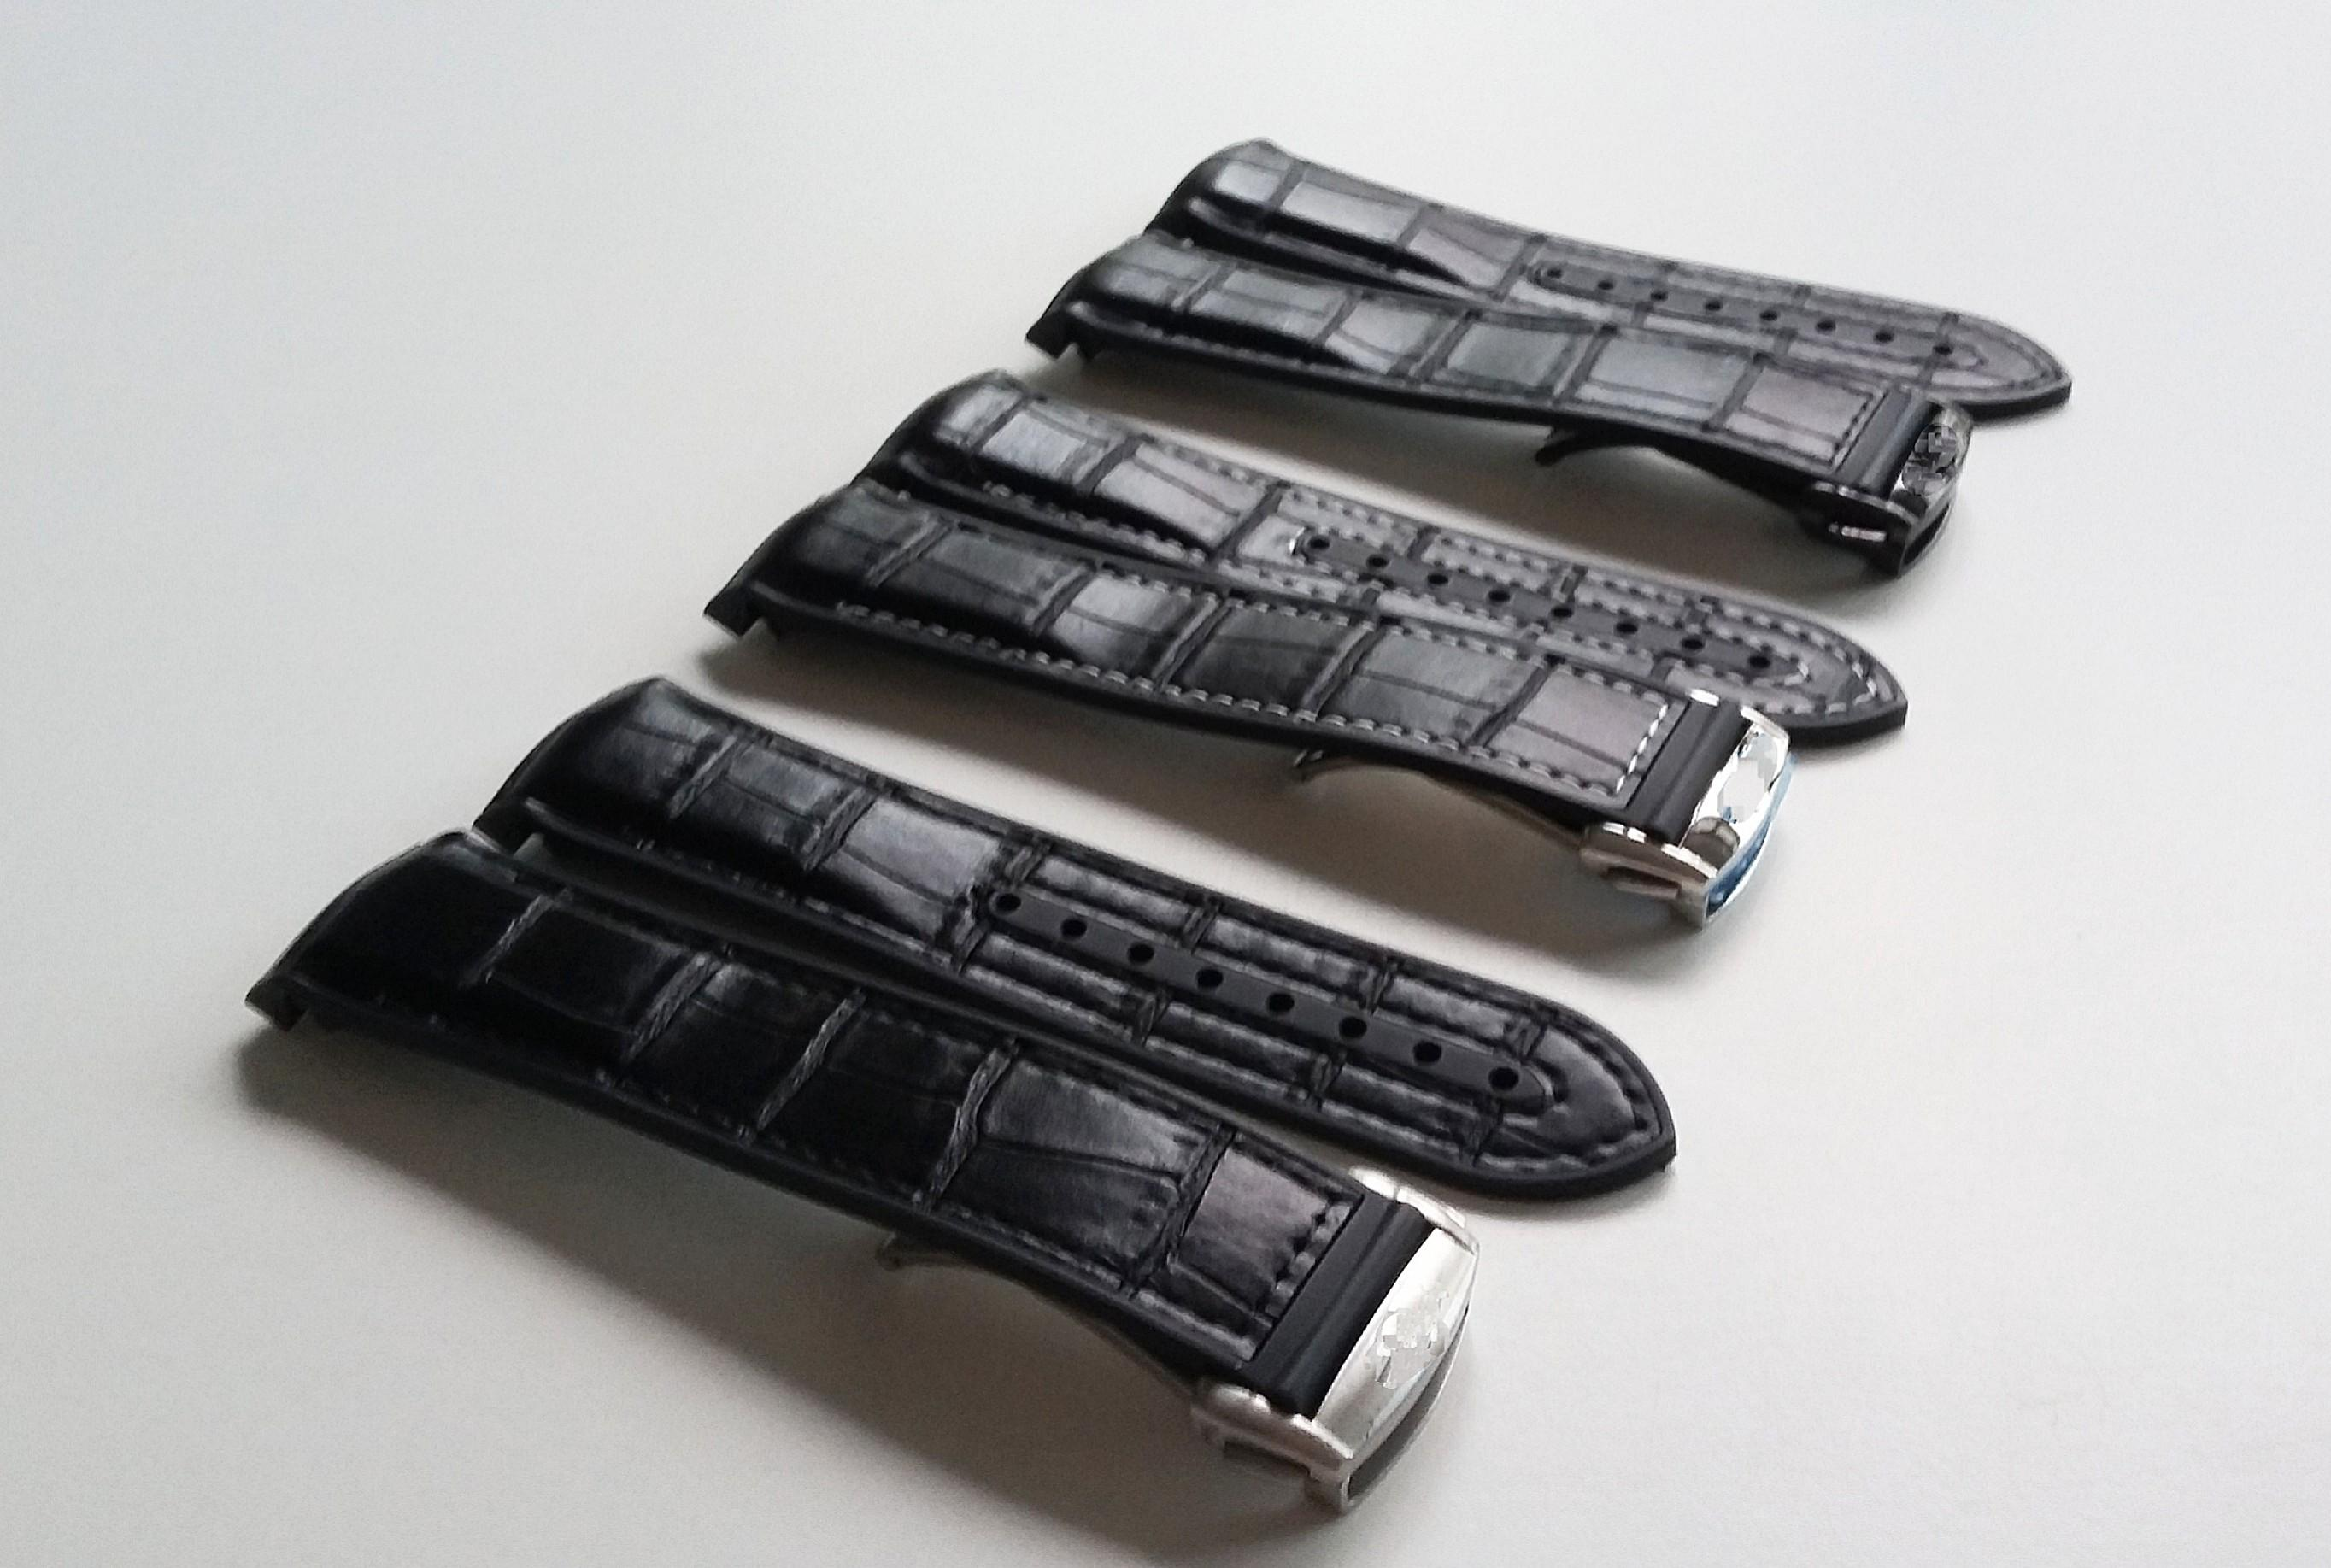 20mm CHACOAL BLACKLEATHER ON RUBBER STRAP WITH STEEL CLASP FOR ROLEX, OMEGA, SEIKO, TUDOR (PRICE INCLUDES INSTALLATION)